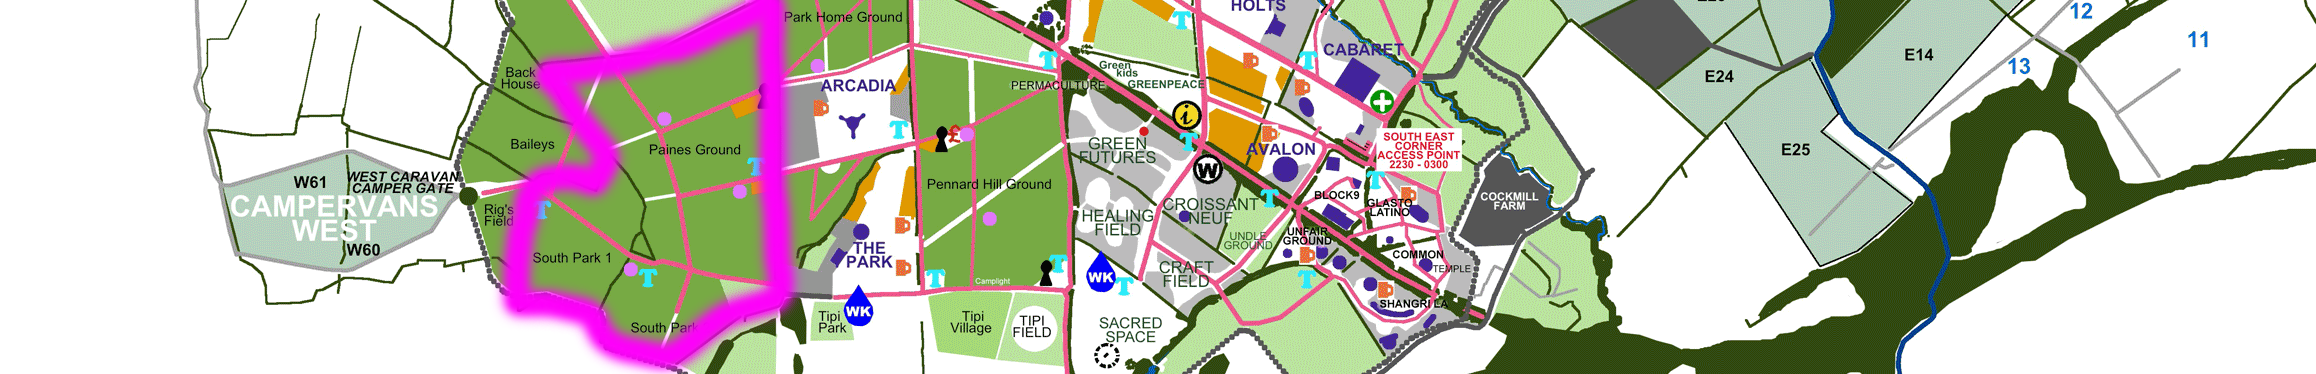 Paines Ground Glastonbury official map segment camping grounds stages campervan fields